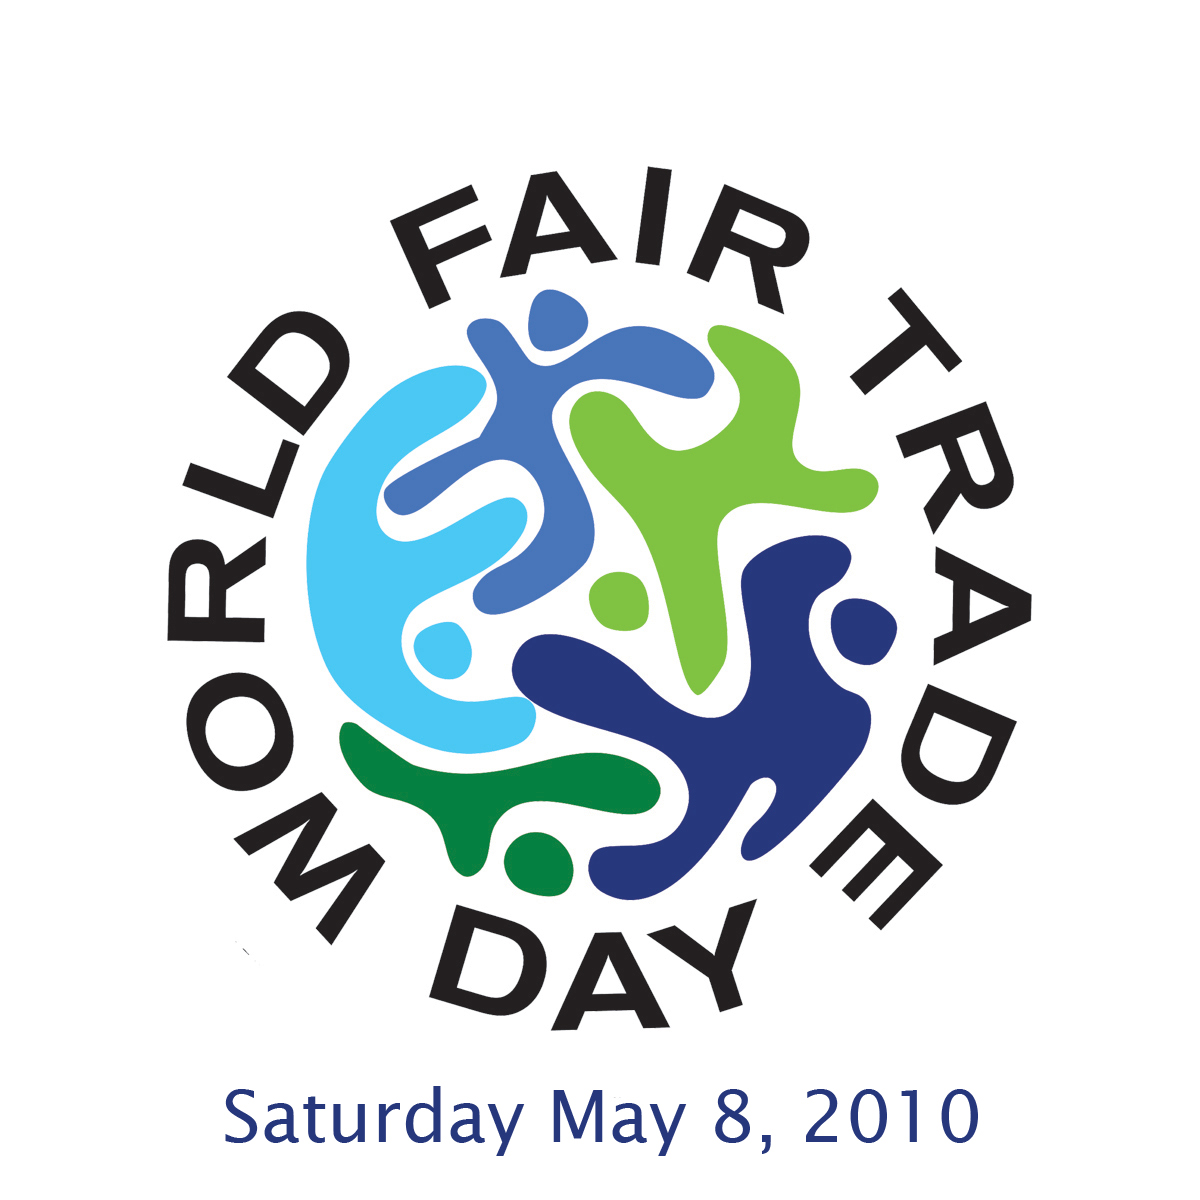 world_fair_trade_day2010.jpg